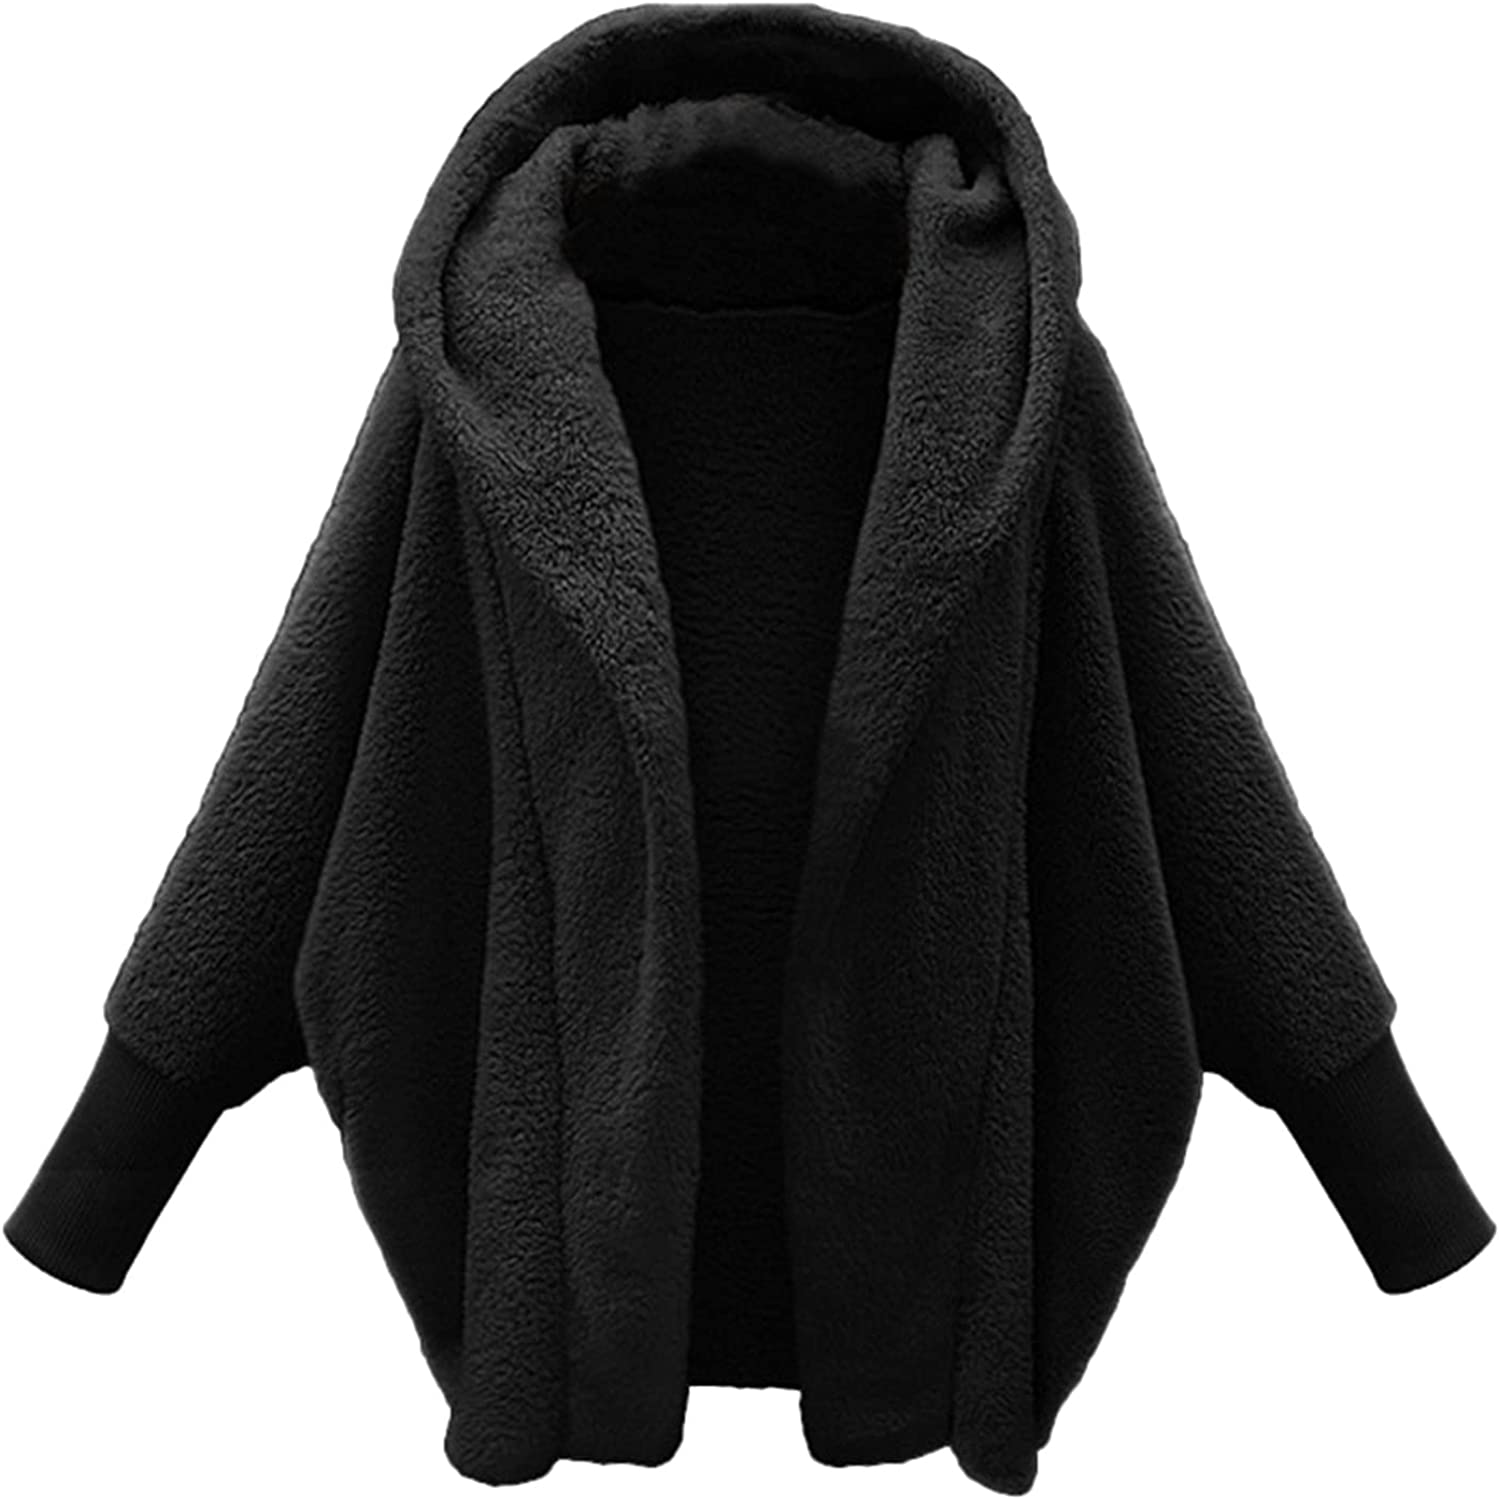 Women Fuzzy Fleece Open San Diego Mall Manufacturer regenerated product Front Hooded Pocket with Cardigans Coats